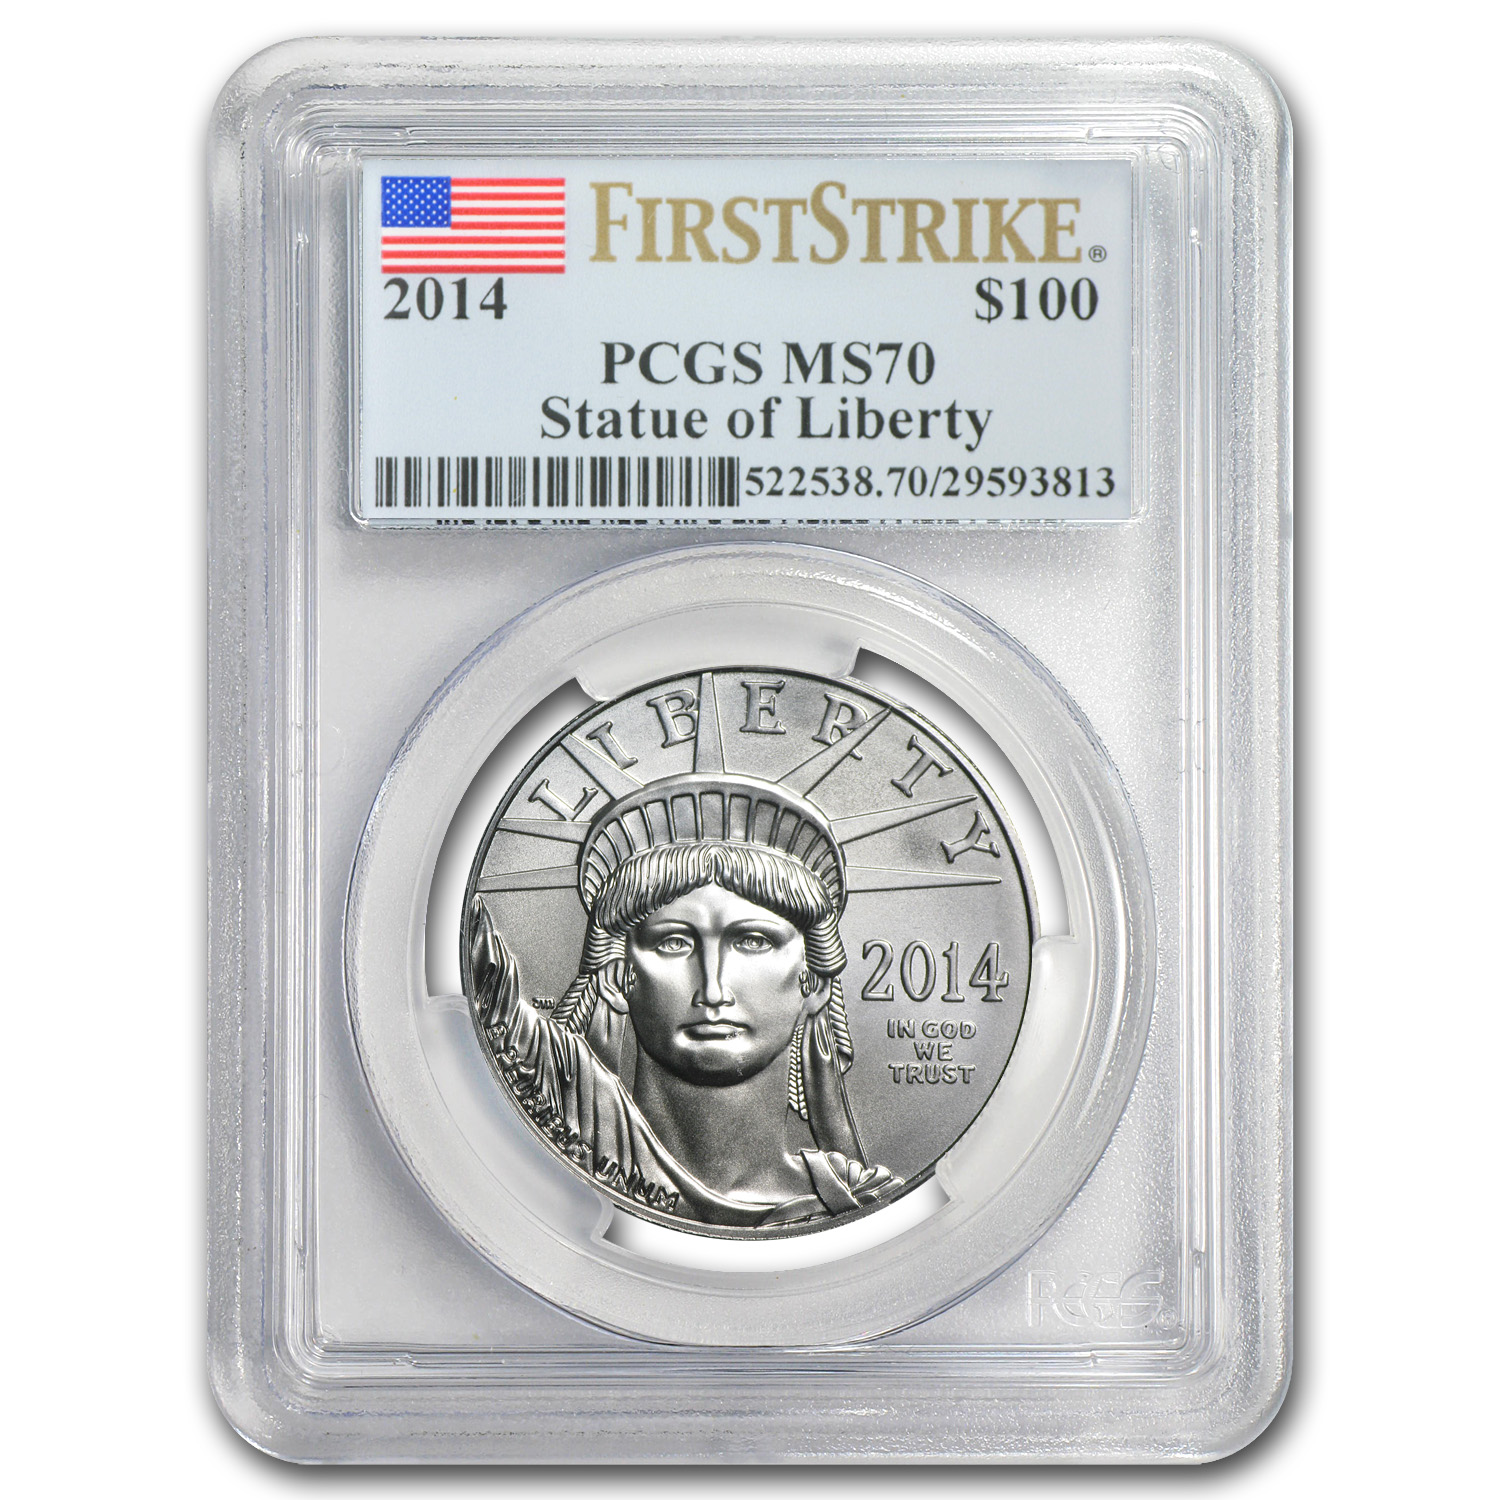 2014 1 oz Platinum American Eagle MS-70 First Strike PCGS